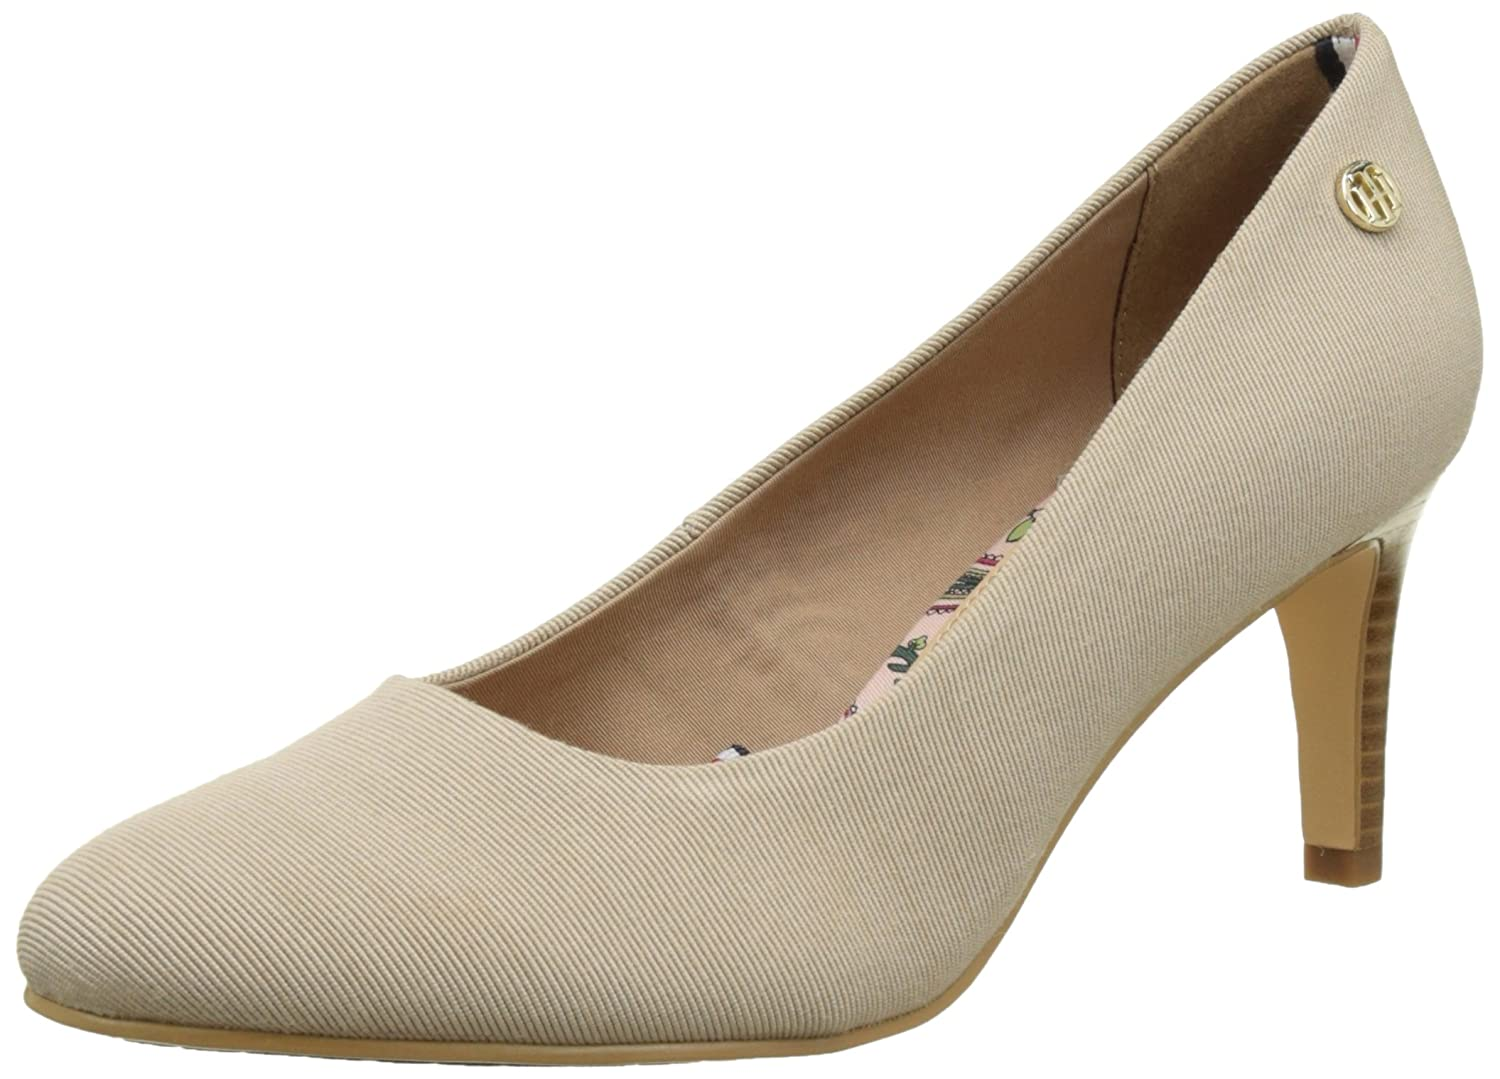 Tommy Hilfiger L1285isette 1d, Scarpe con Tacco Donna